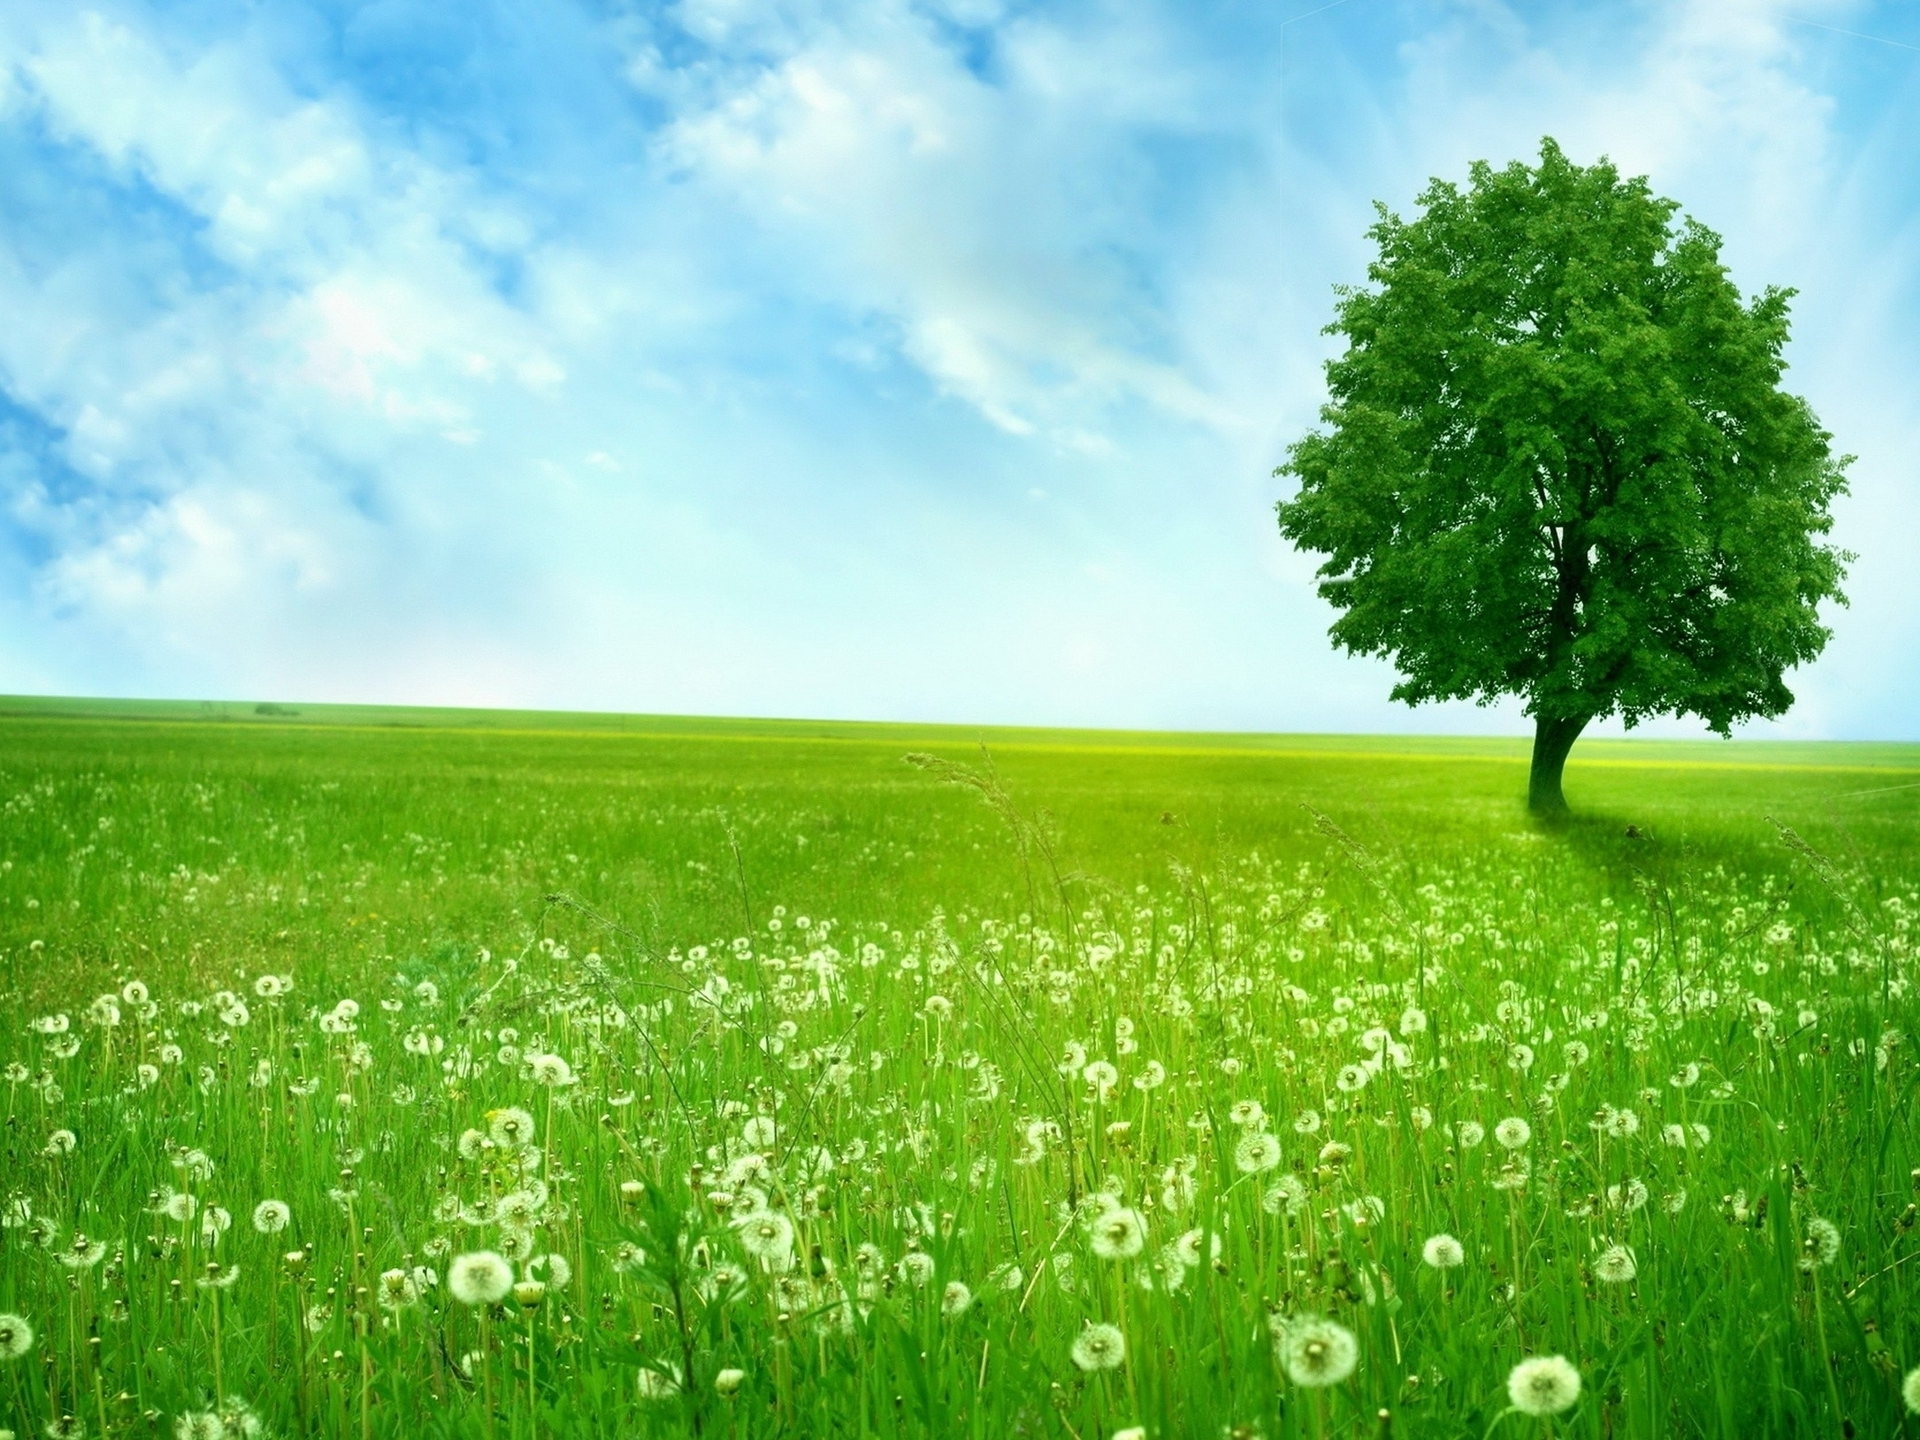 Green grass and trees background